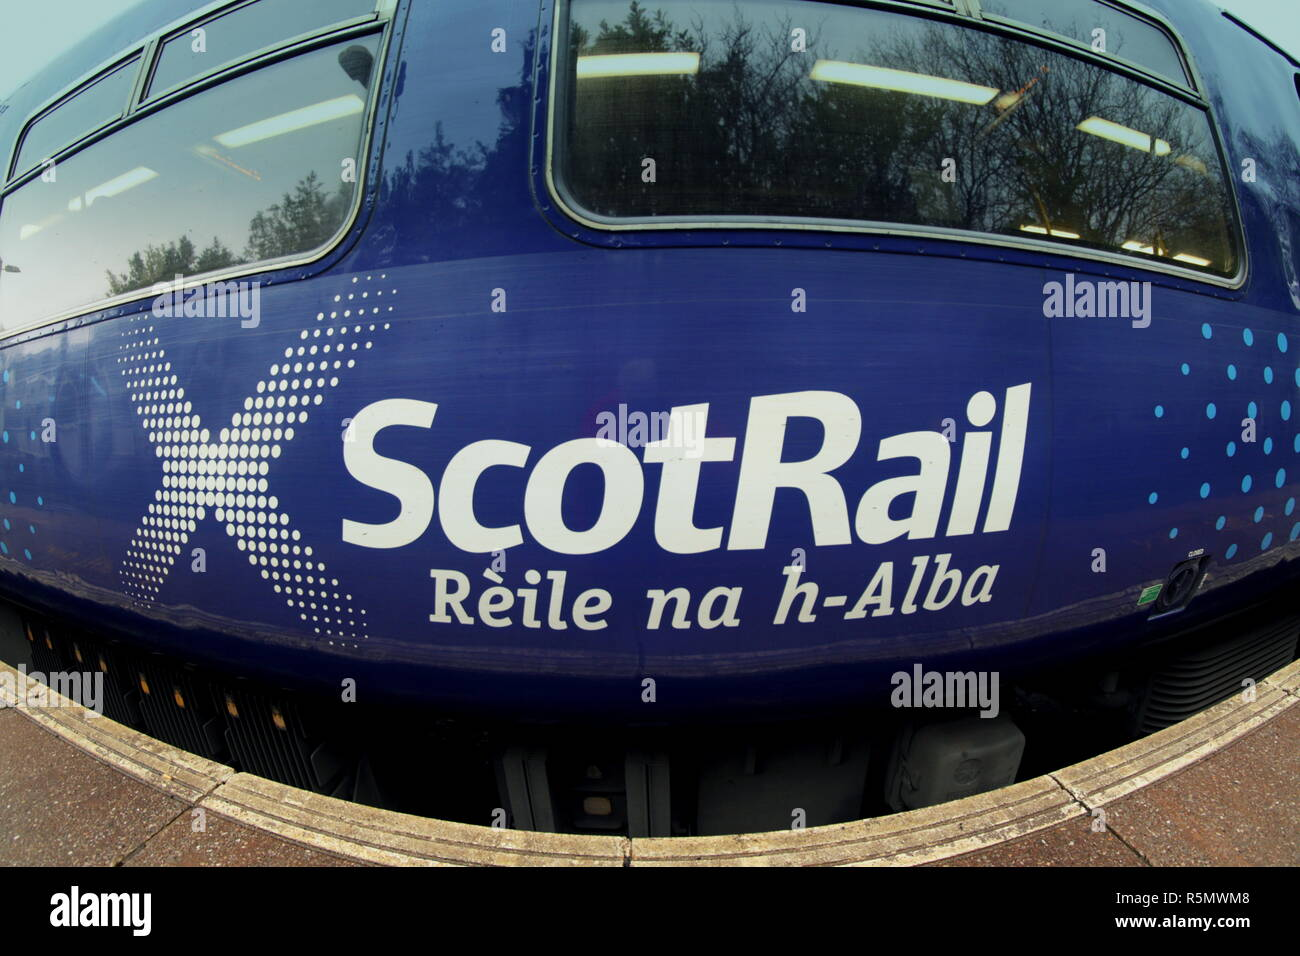 scotrail Rèile na h-Alba logo on the side of a carriage nobody - Stock Image